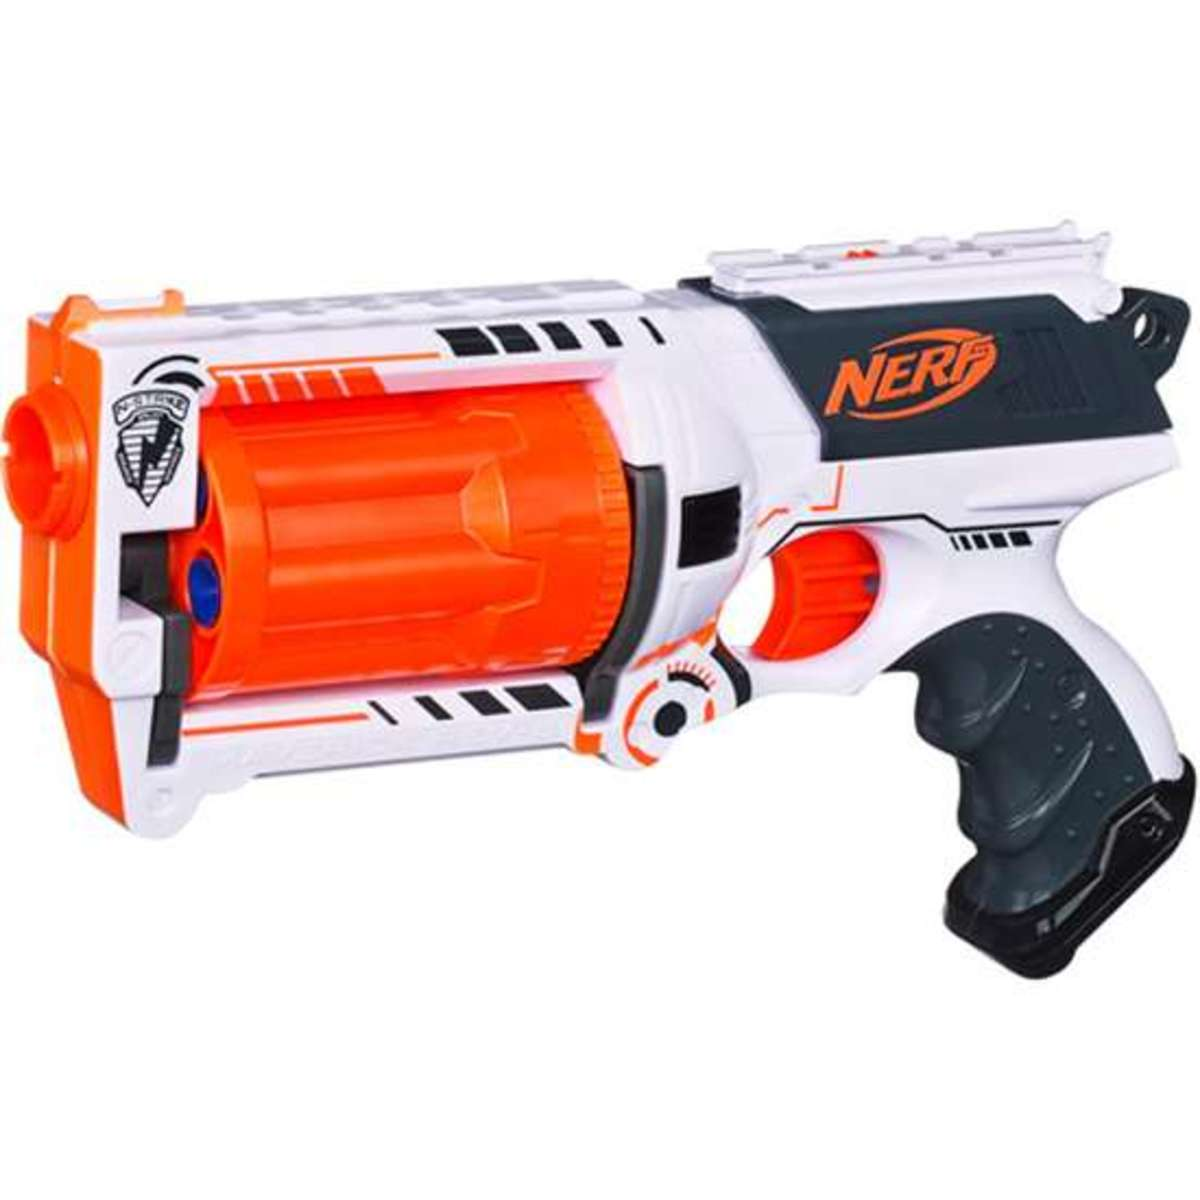 "The slide primer is the back portion of the gun where the ""Nerf"" logo is, right above the trigger. To operate this blaster you would need to grip onto this portion of the gun and pull back. You can see how this process could be difficult for a child."